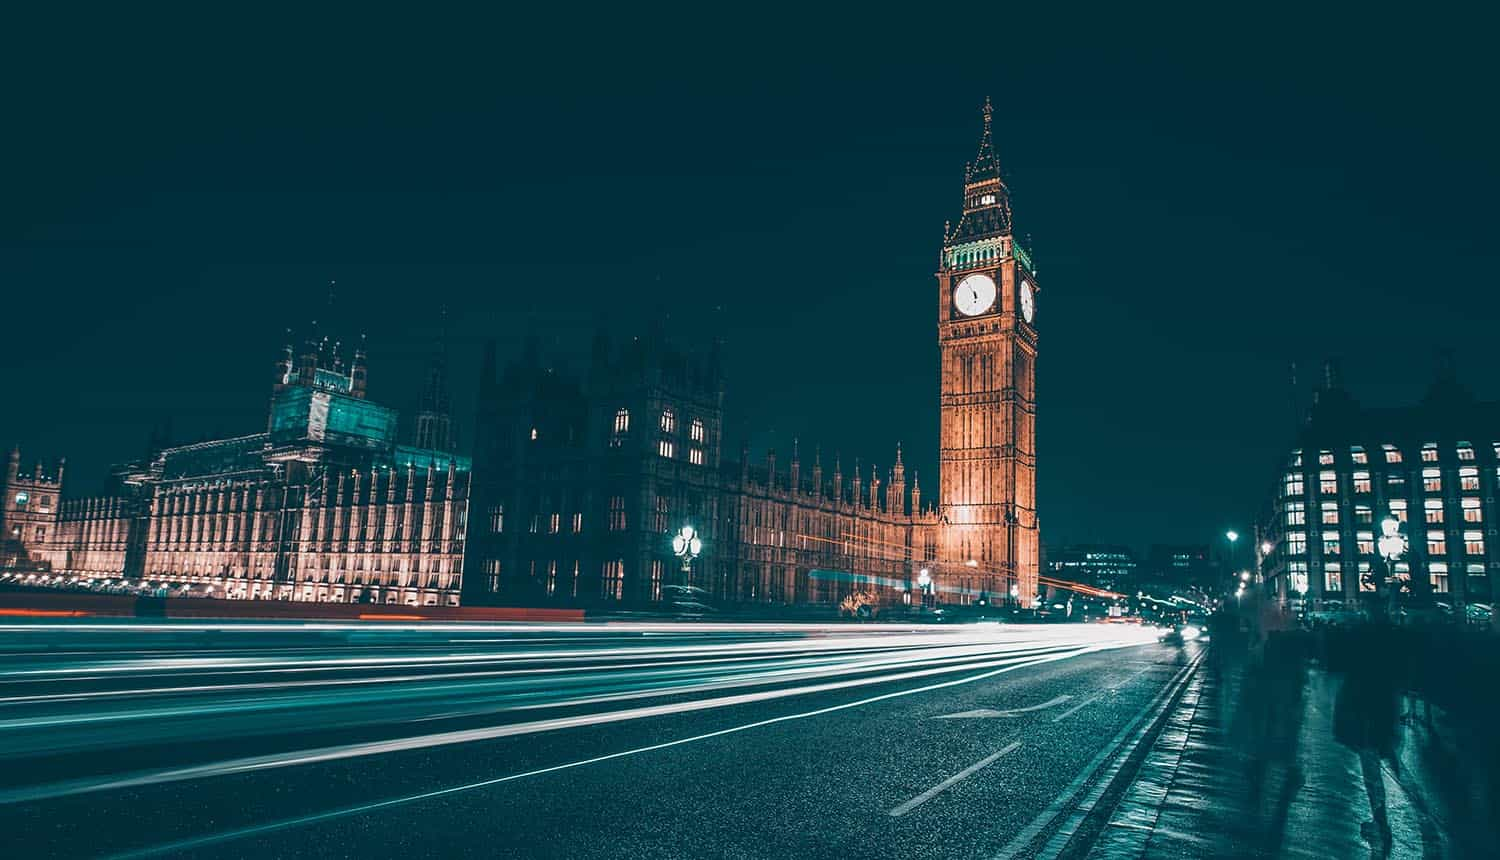 Big Ben and House of Parliament at night in UK showing post-Brexit privacy rules